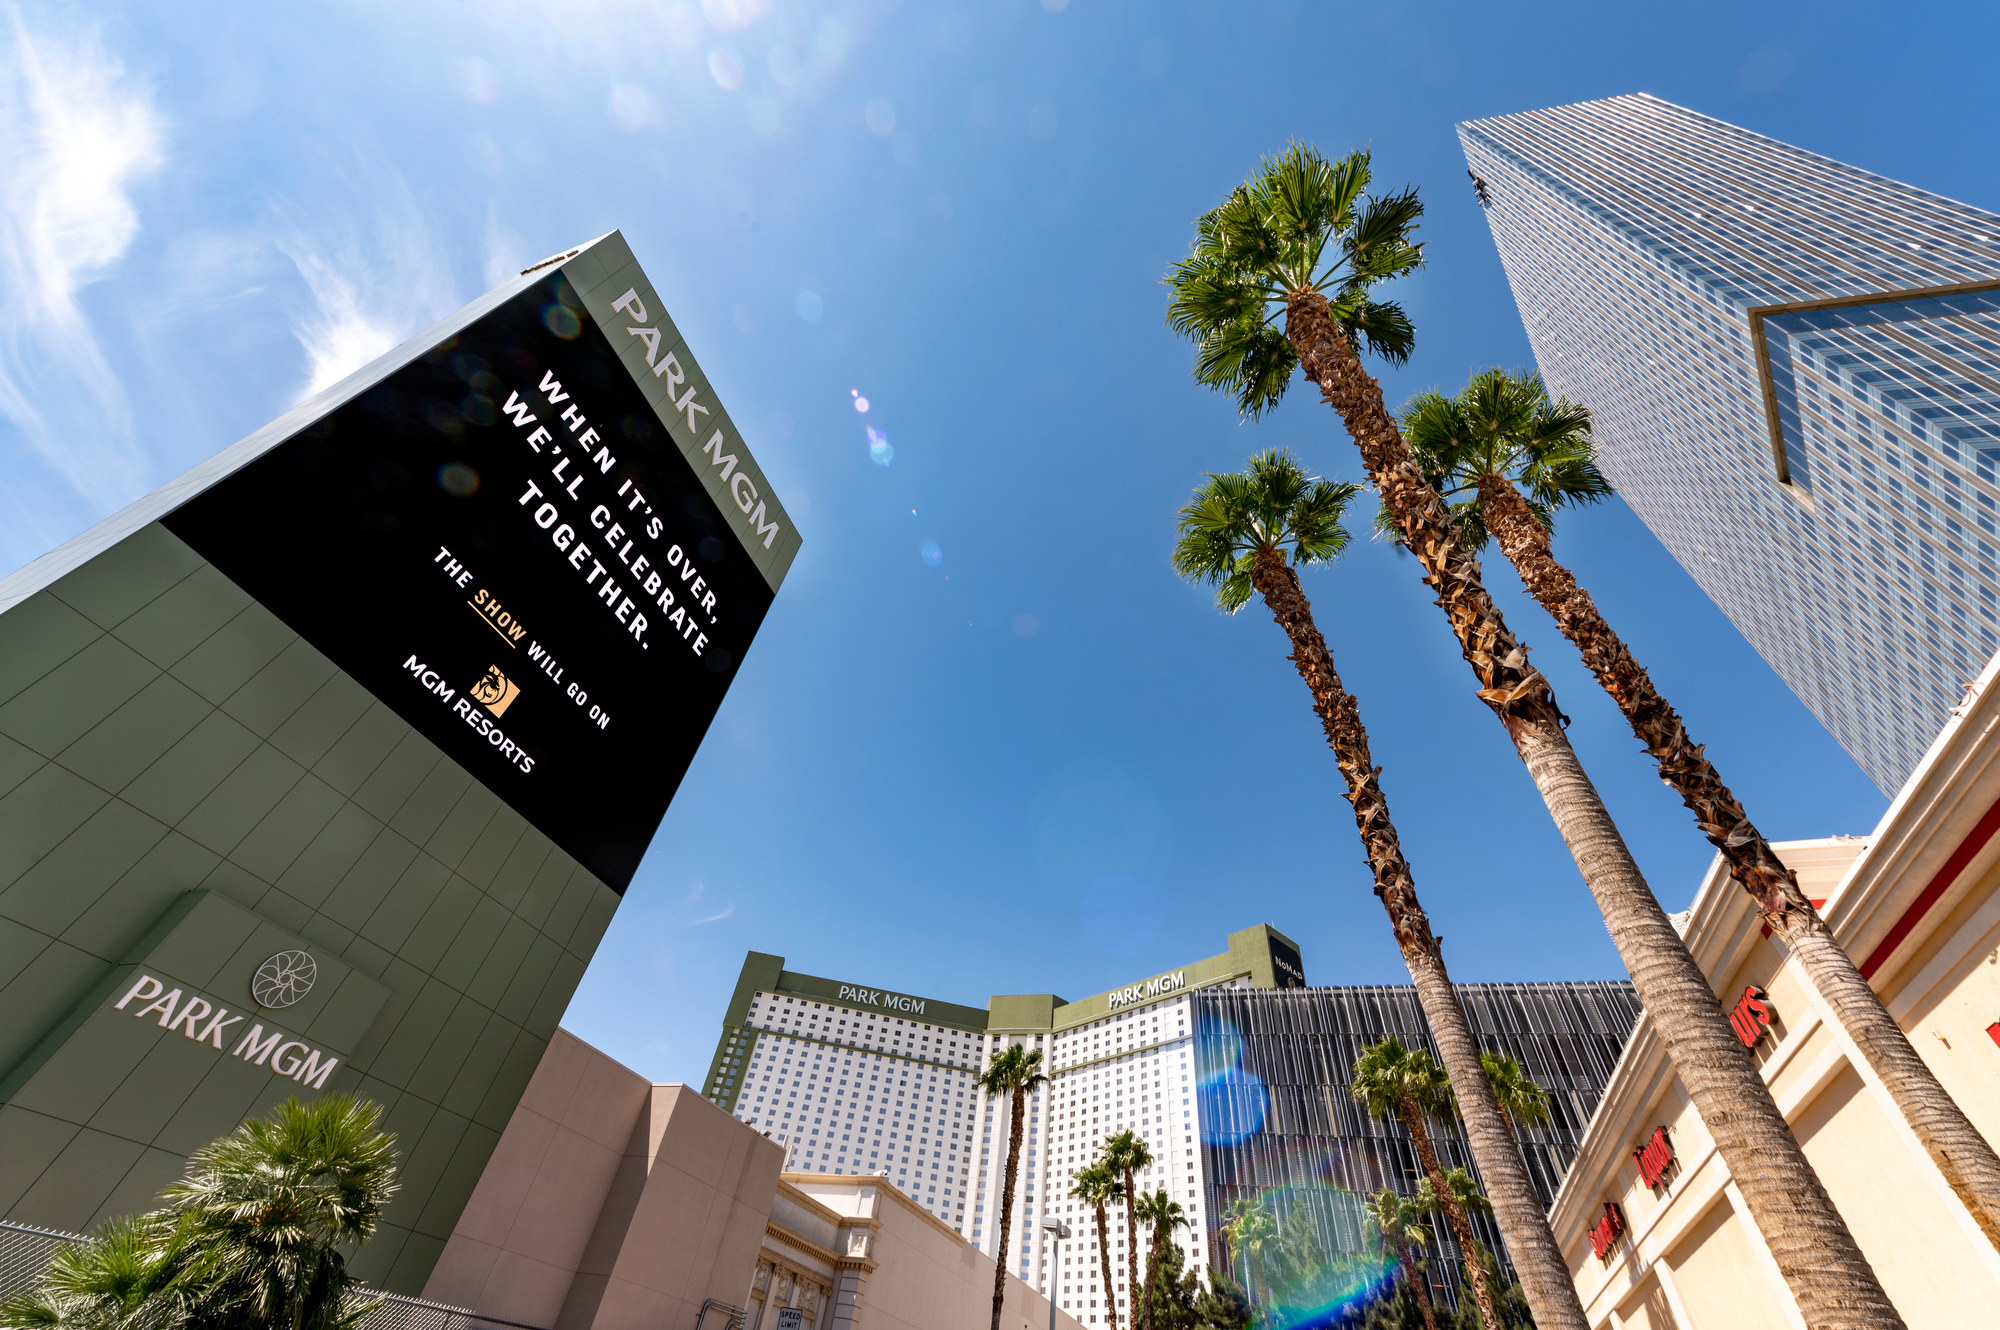 The marquee at a resort on the Las Vegas Strip